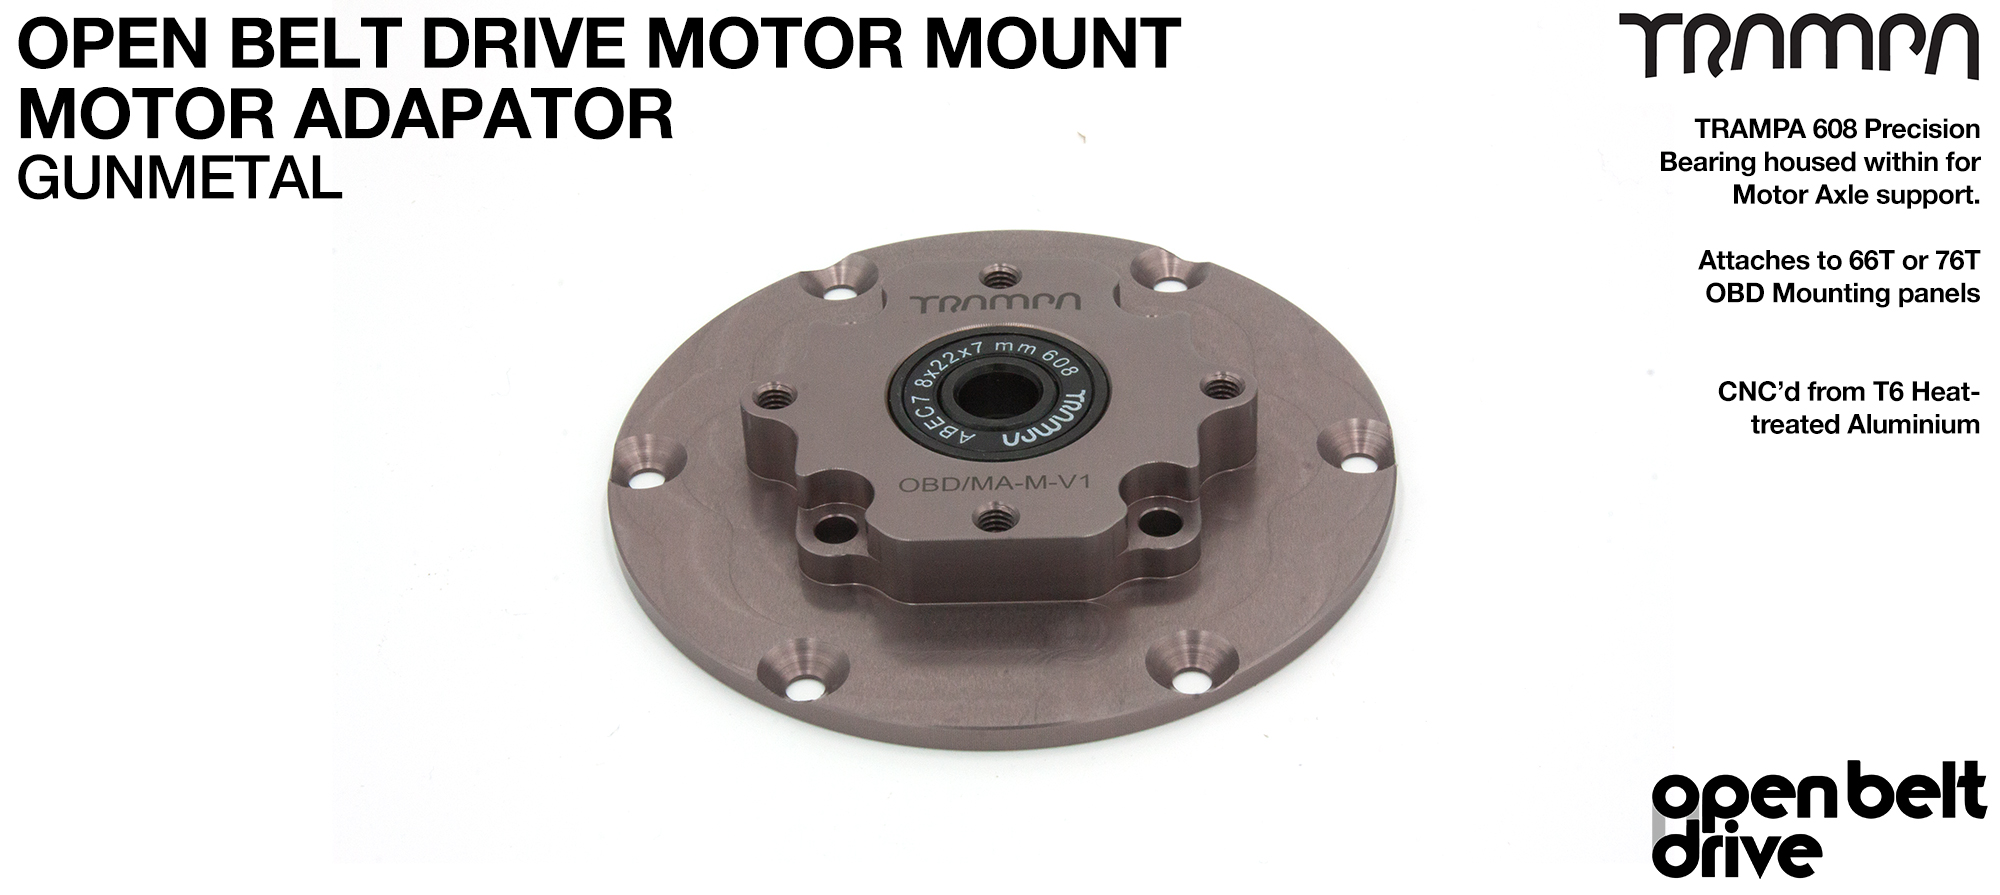 GUNMETAL OBD Motor Adaptors with Housed Bearing